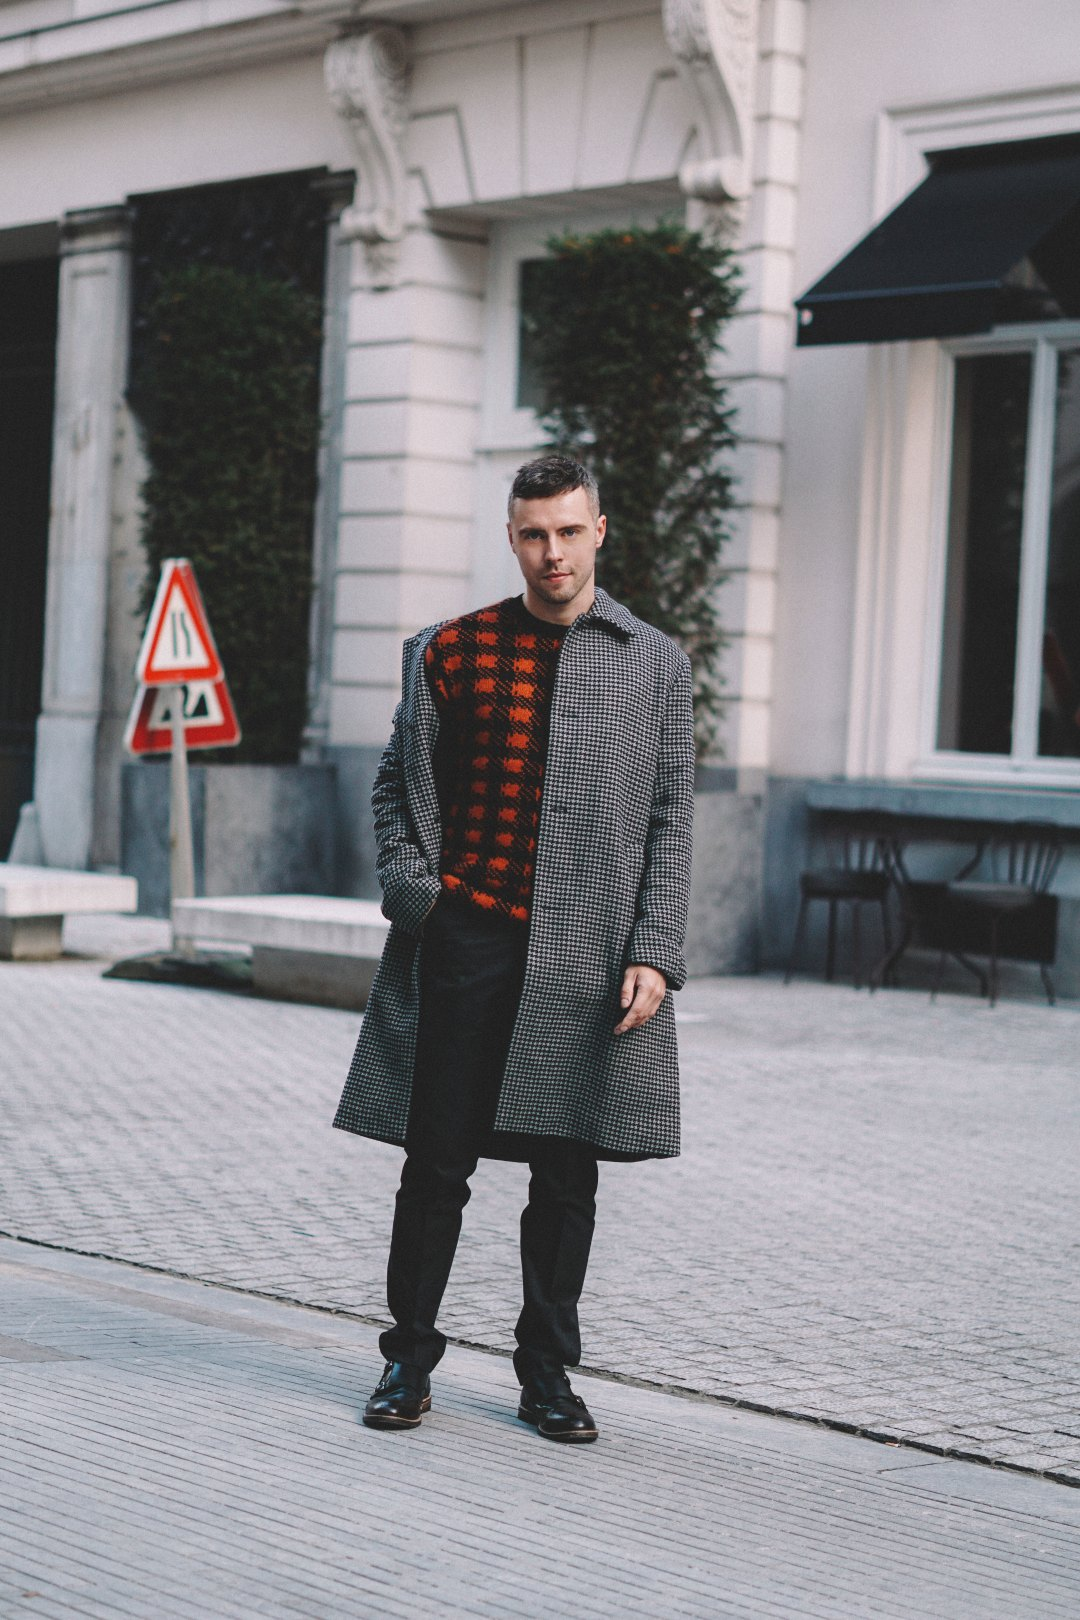 Weekend break in Brussels. Wearing Double Dogtooth Check Coat, Mohair Plaid Crew Neck Jumper and Micro Dogtooth Stretch Trousers from French Connection. Lanx Finney Shoes. Blog by Skirmantas Petraitis.